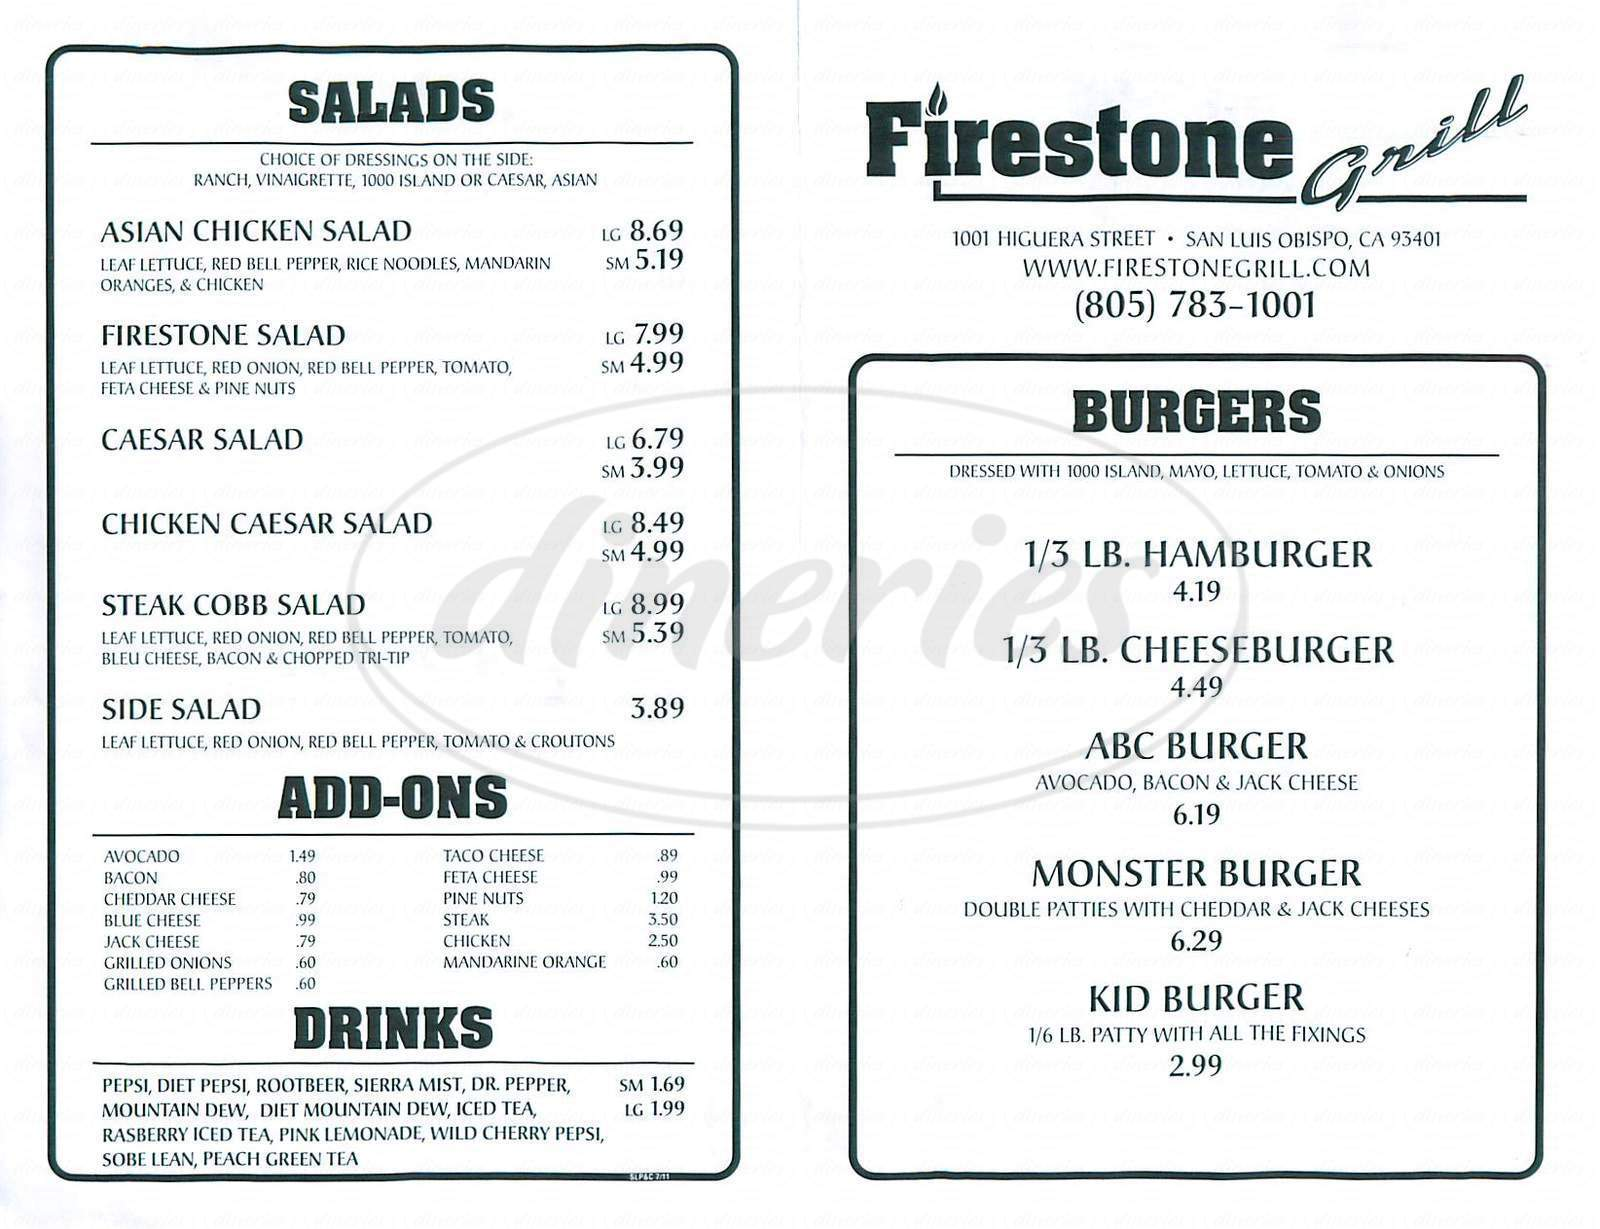 menu for Firestone Grill